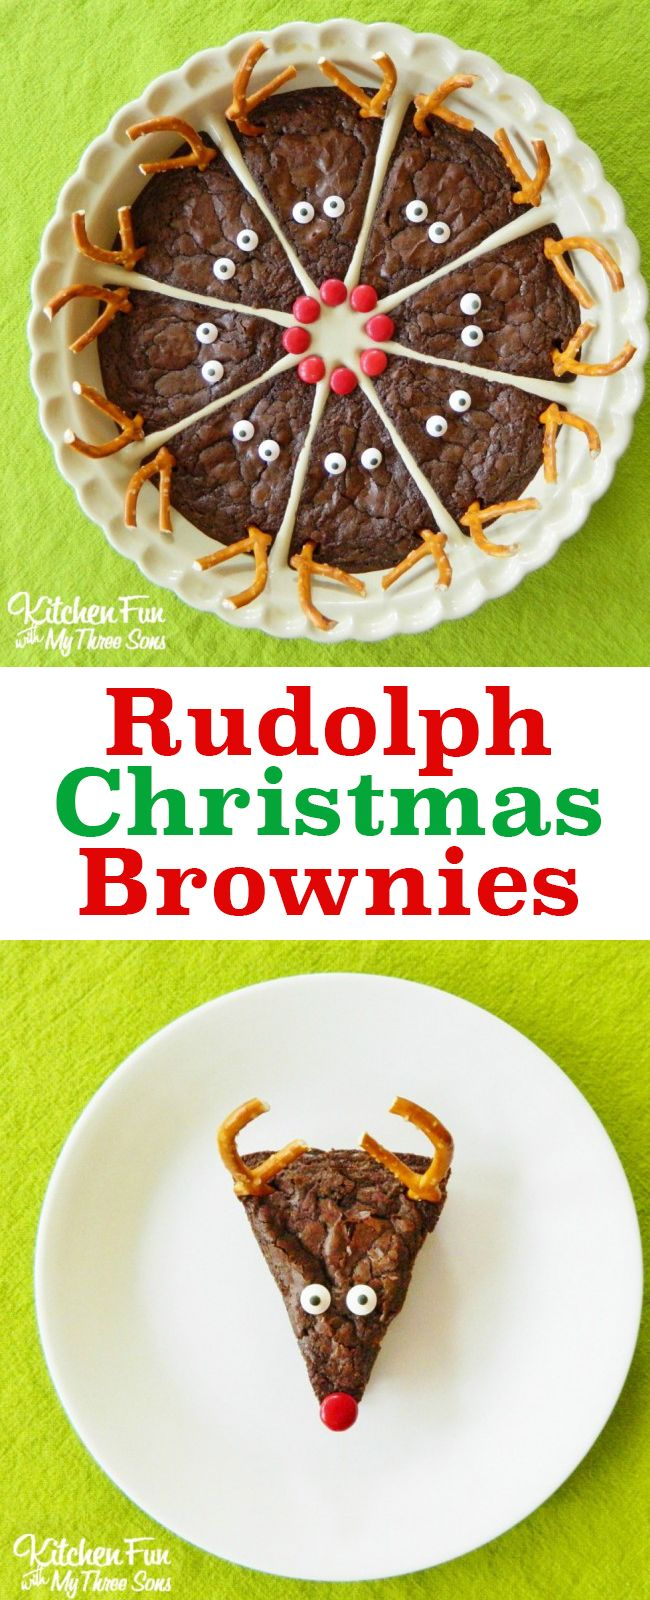 So cute! Love these easy Rudolph the Red Nose Reindeer Brownies. A perfect Christmas holiday party dessert for chocolate lovers. Follow My Pinterest: @vickileandro